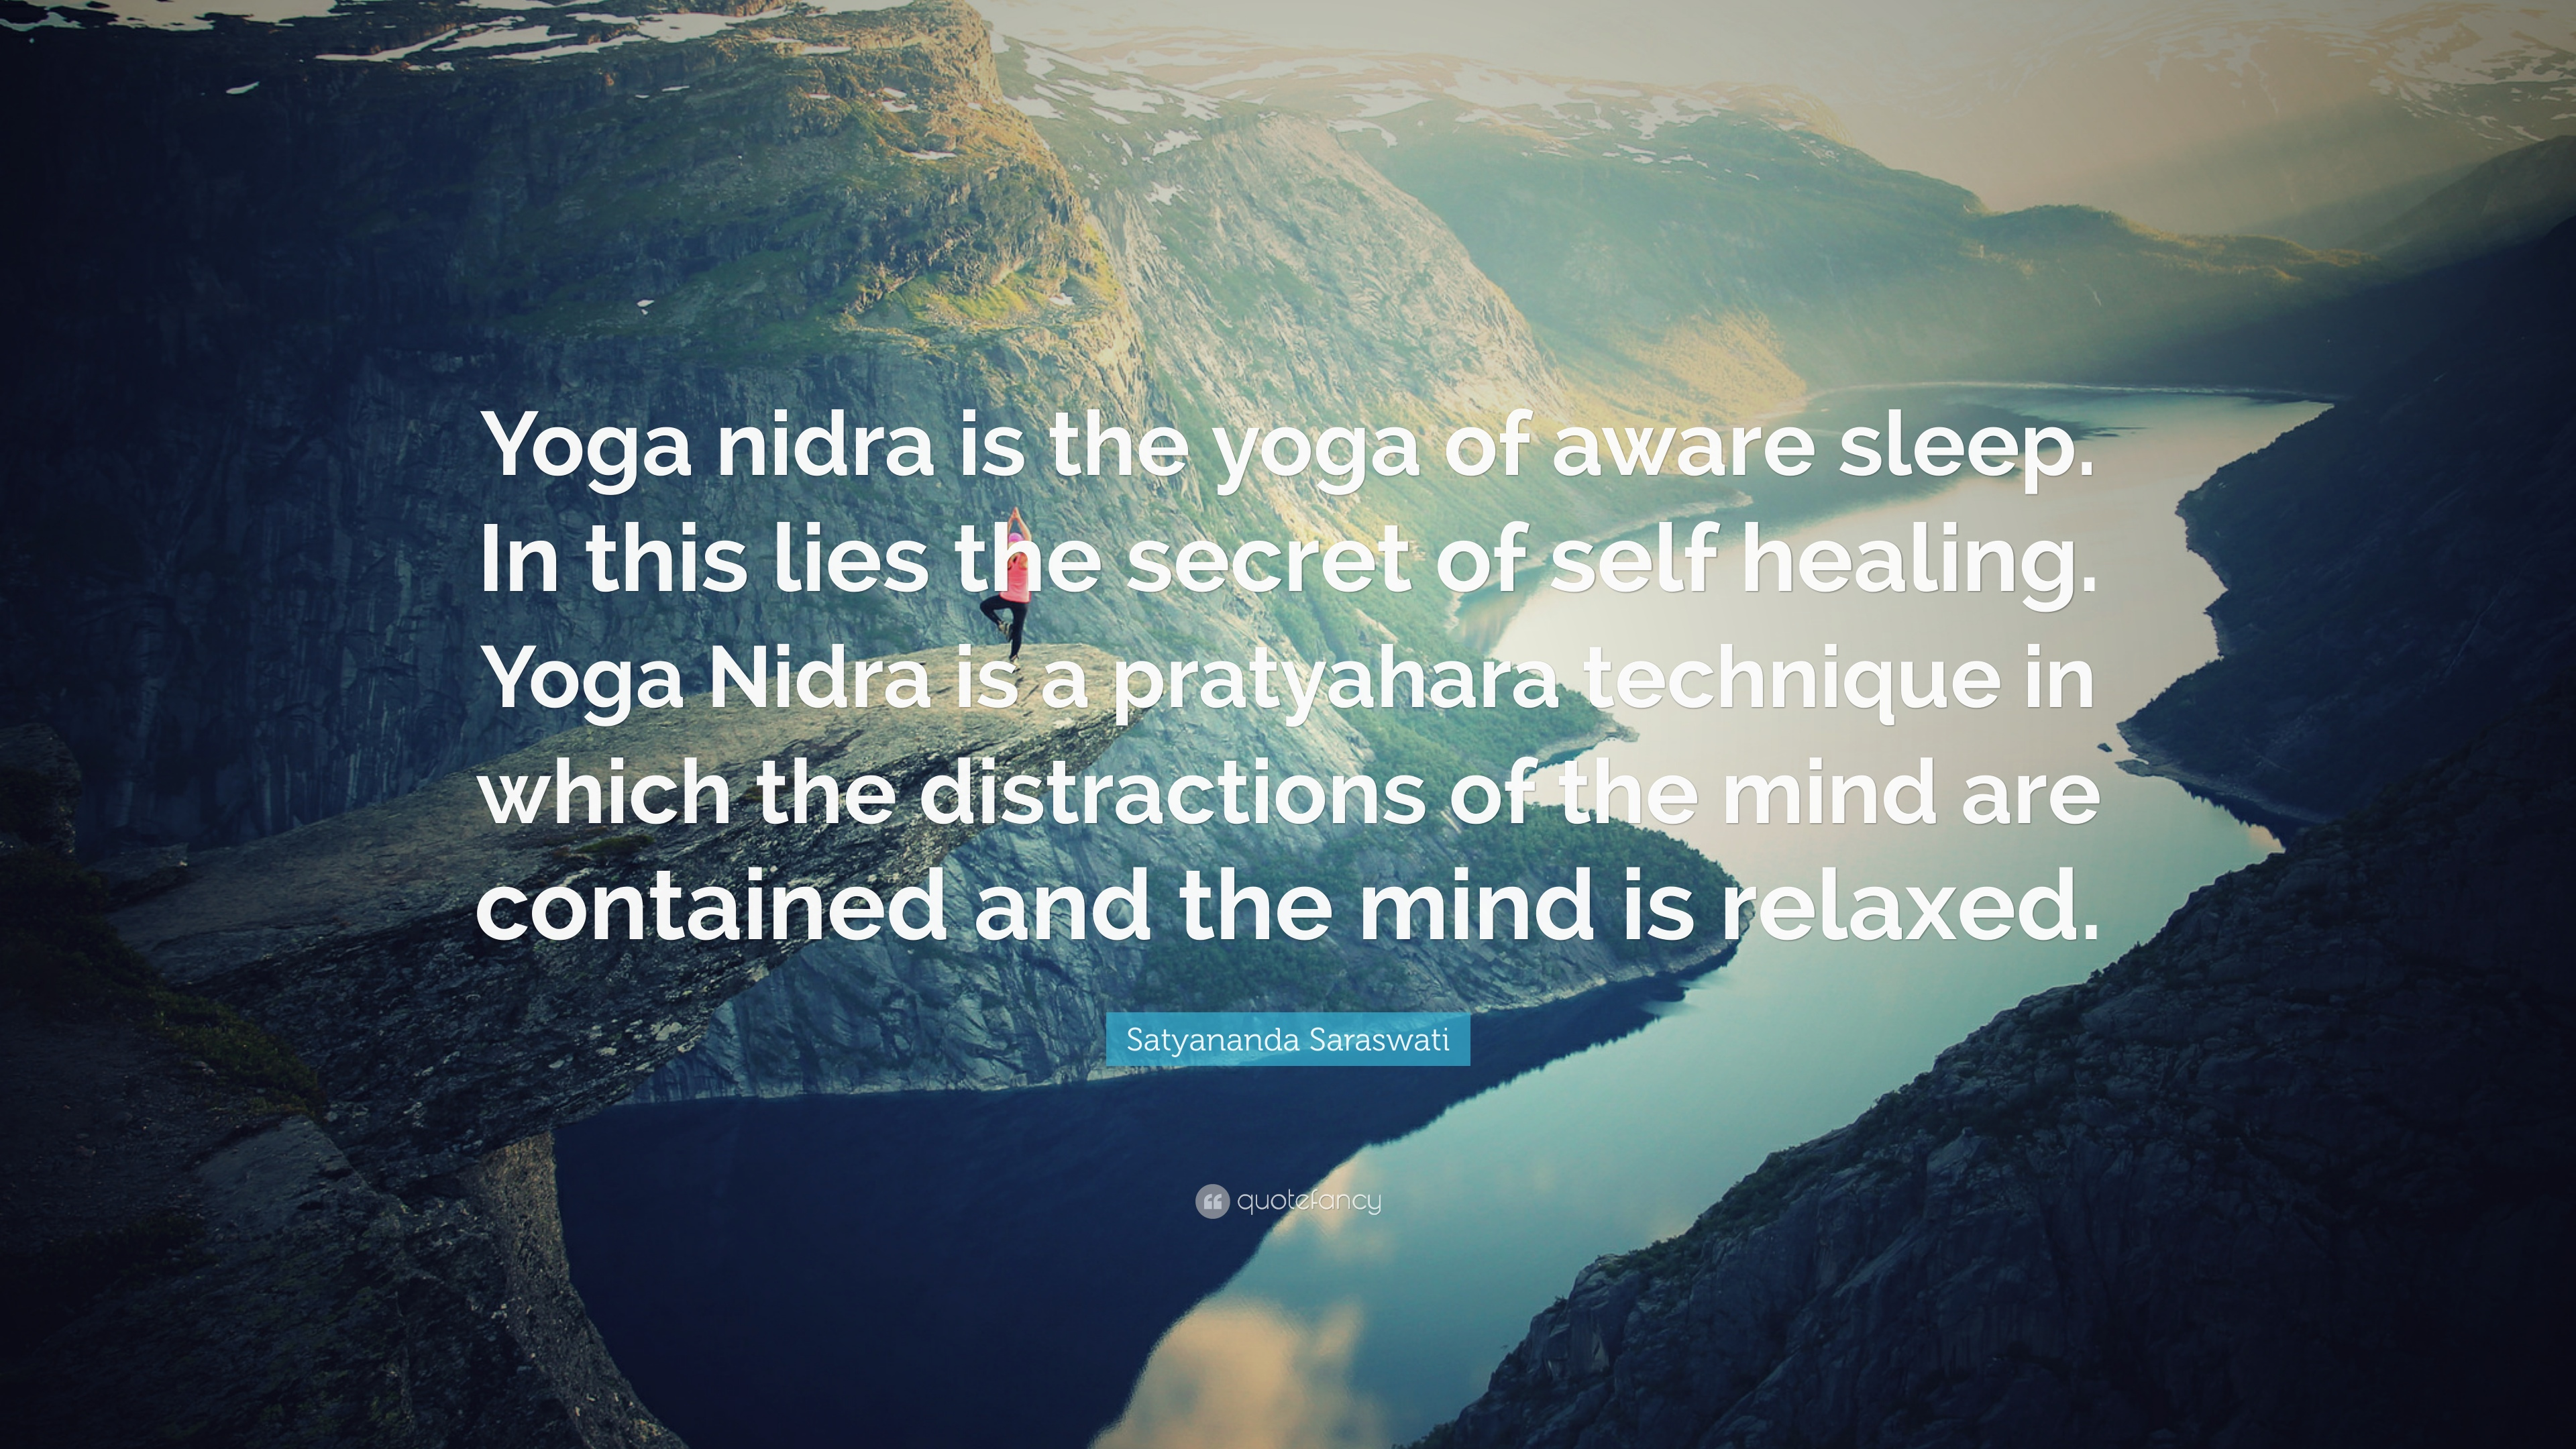 Satyananda Saraswati Quote Yoga Nidra Is The Yoga Of Aware Sleep In This Lies The Secret Of Self Healing Yoga Nidra Is A Pratyahara Technique In 9 Wallpapers Quotefancy